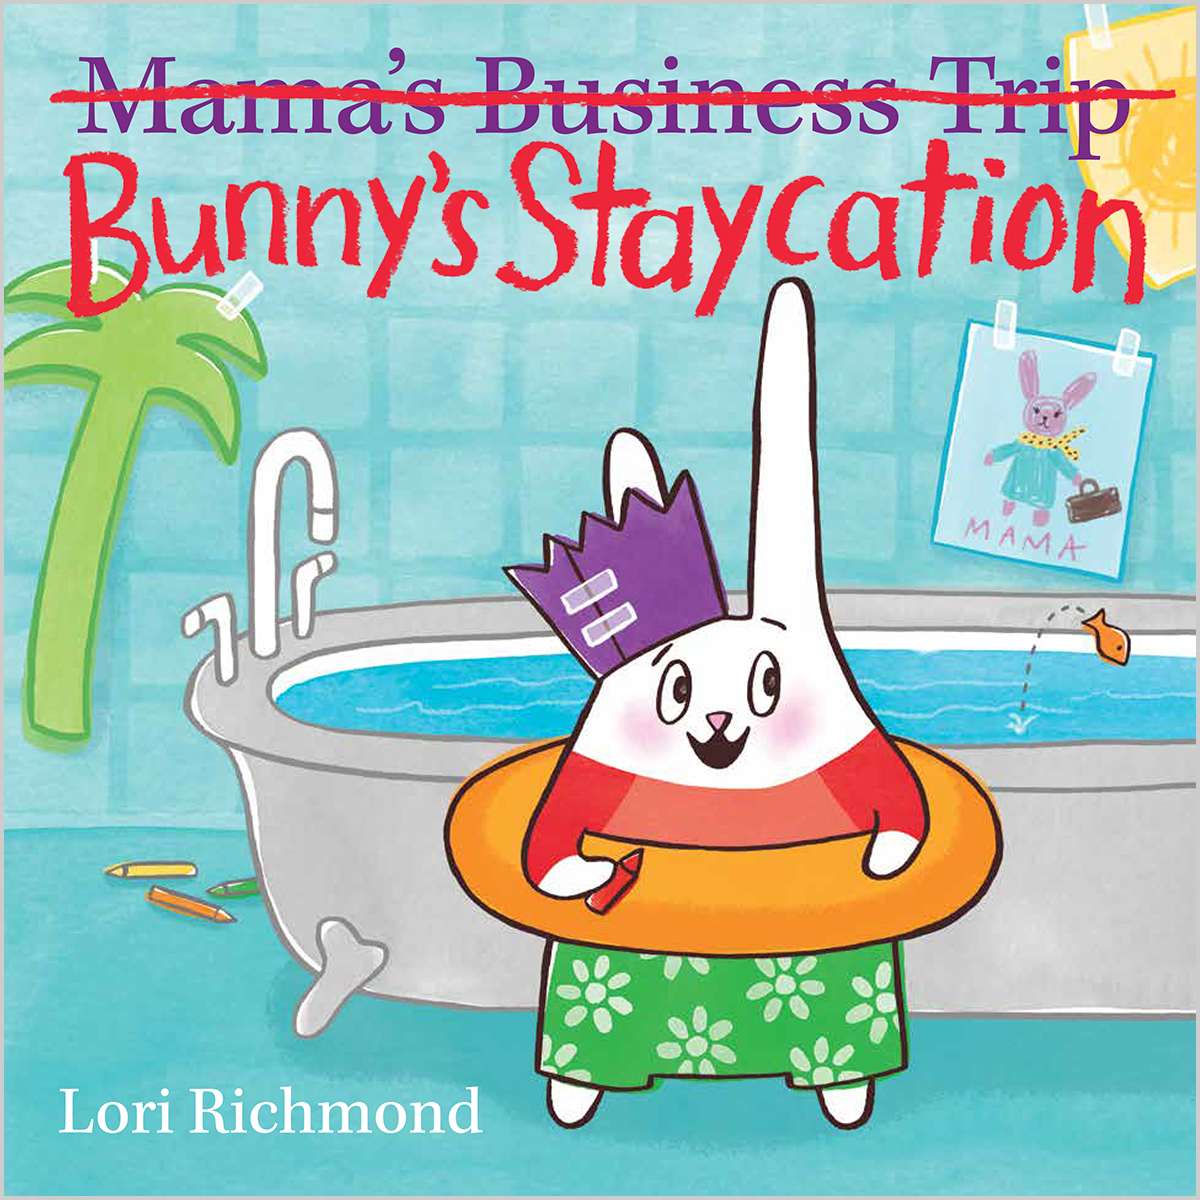 Lori-Richmond-bunnys-staycation-book.jpg